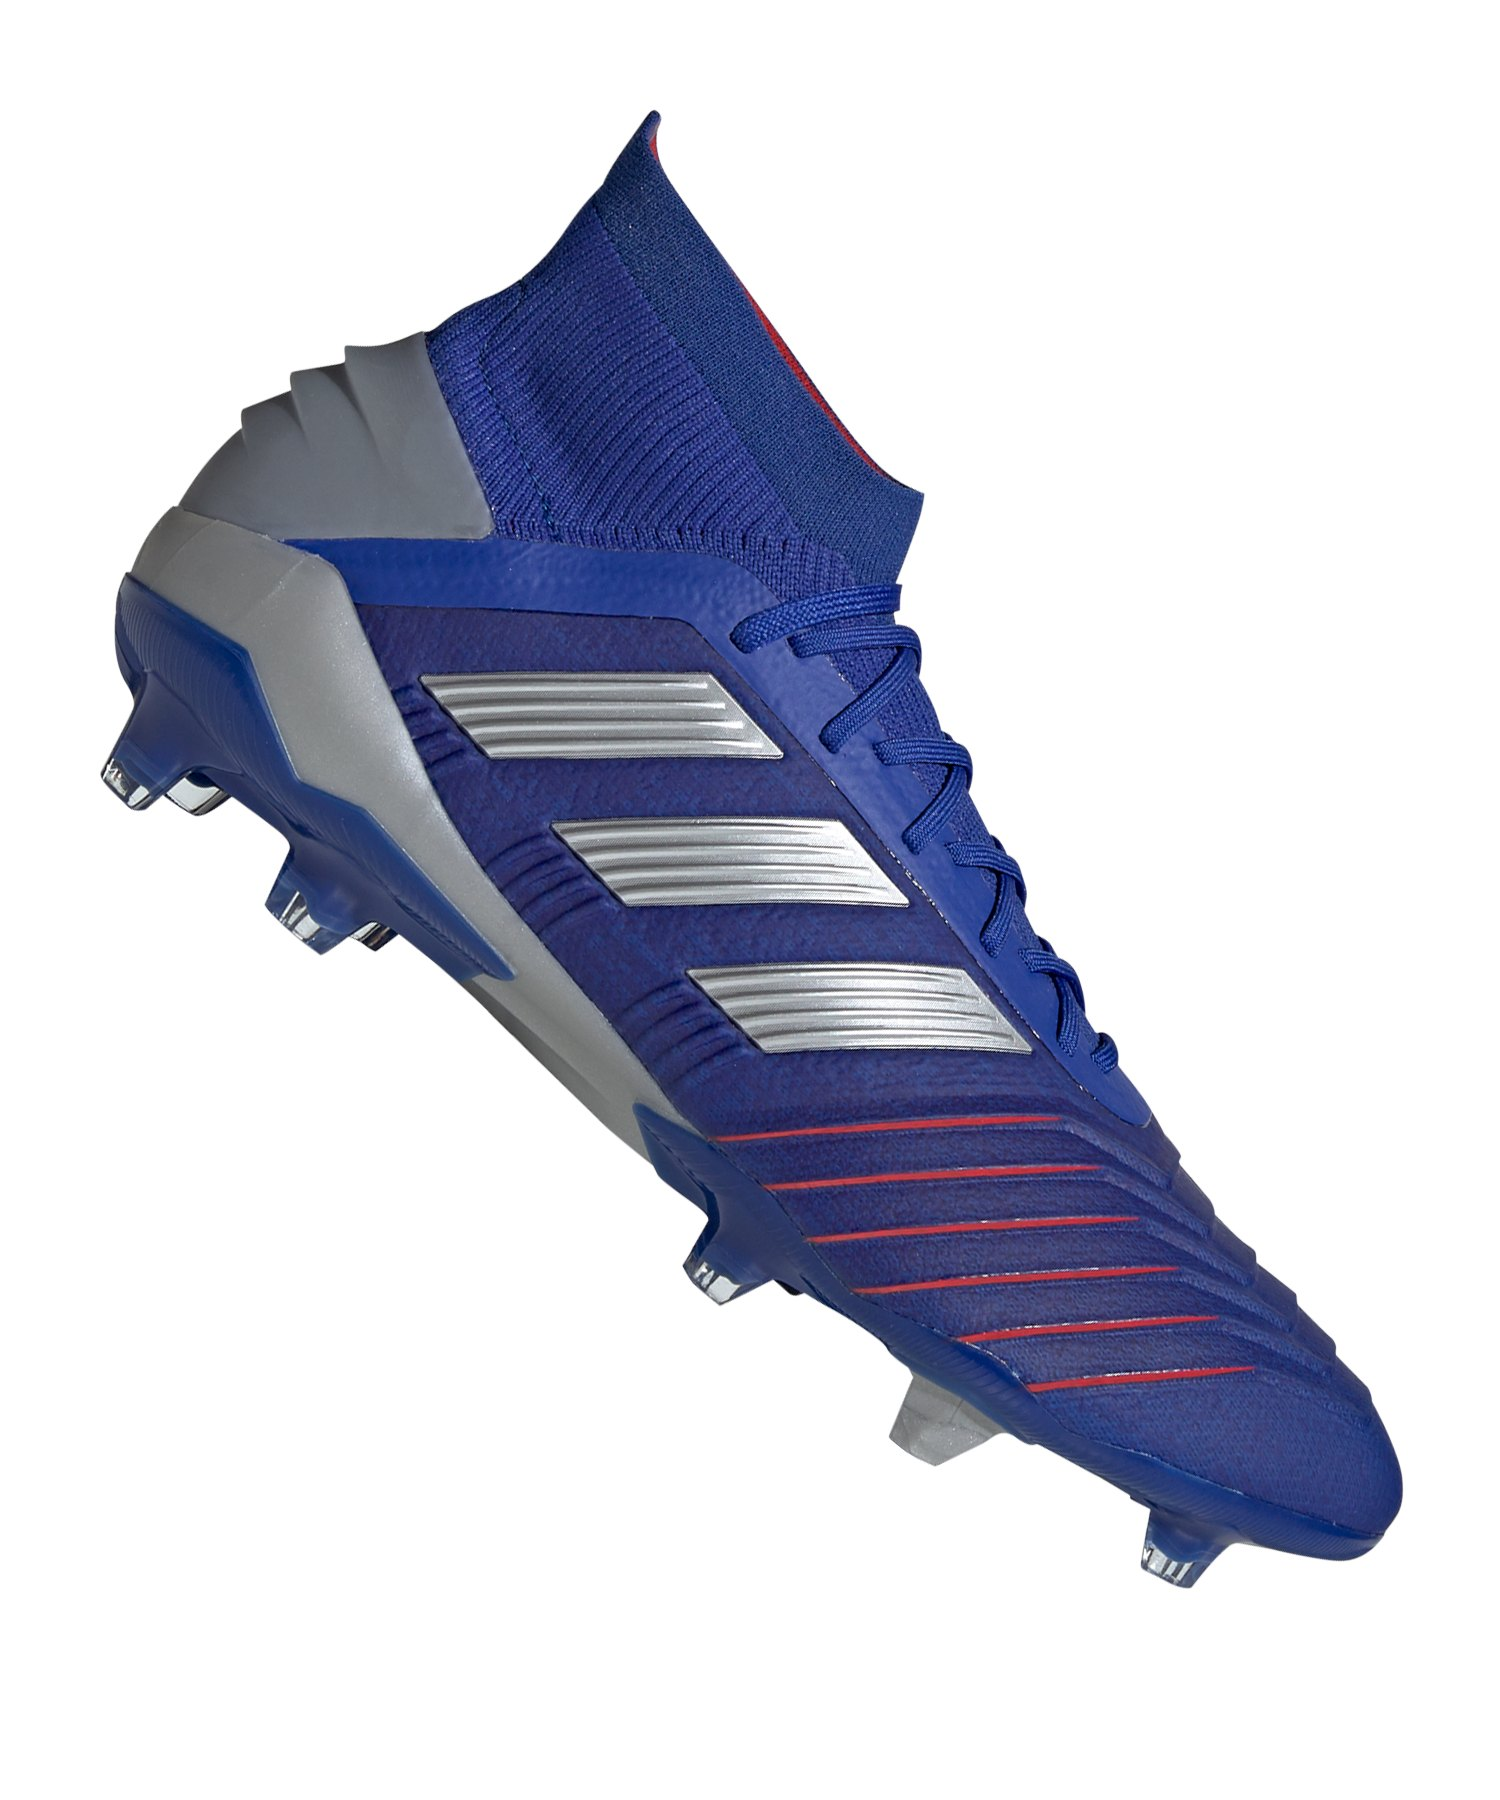 speical offer shoes for cheap online here wholesale adidas predator 18 kids black and white billig